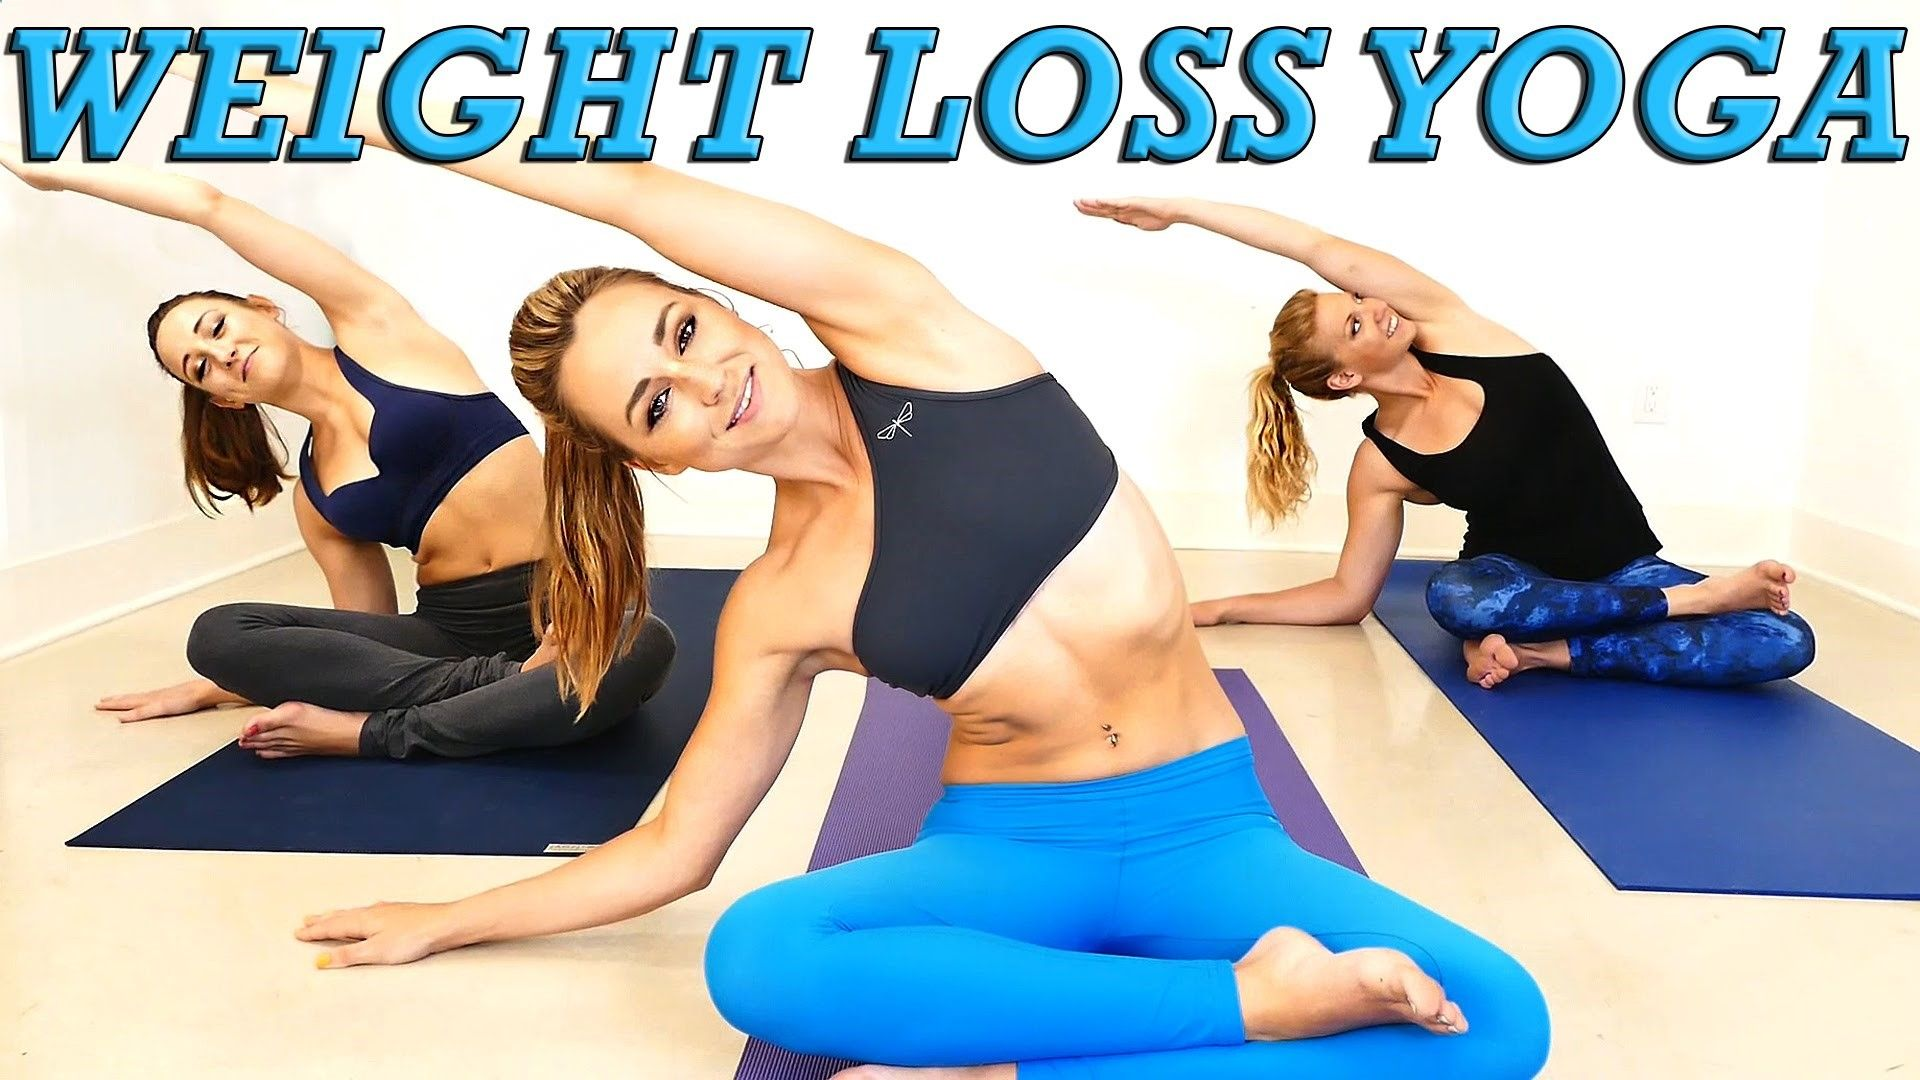 Yoga Weight Loss Challenge! 20 Minute Fat Burning Yoga Workout Beginners...